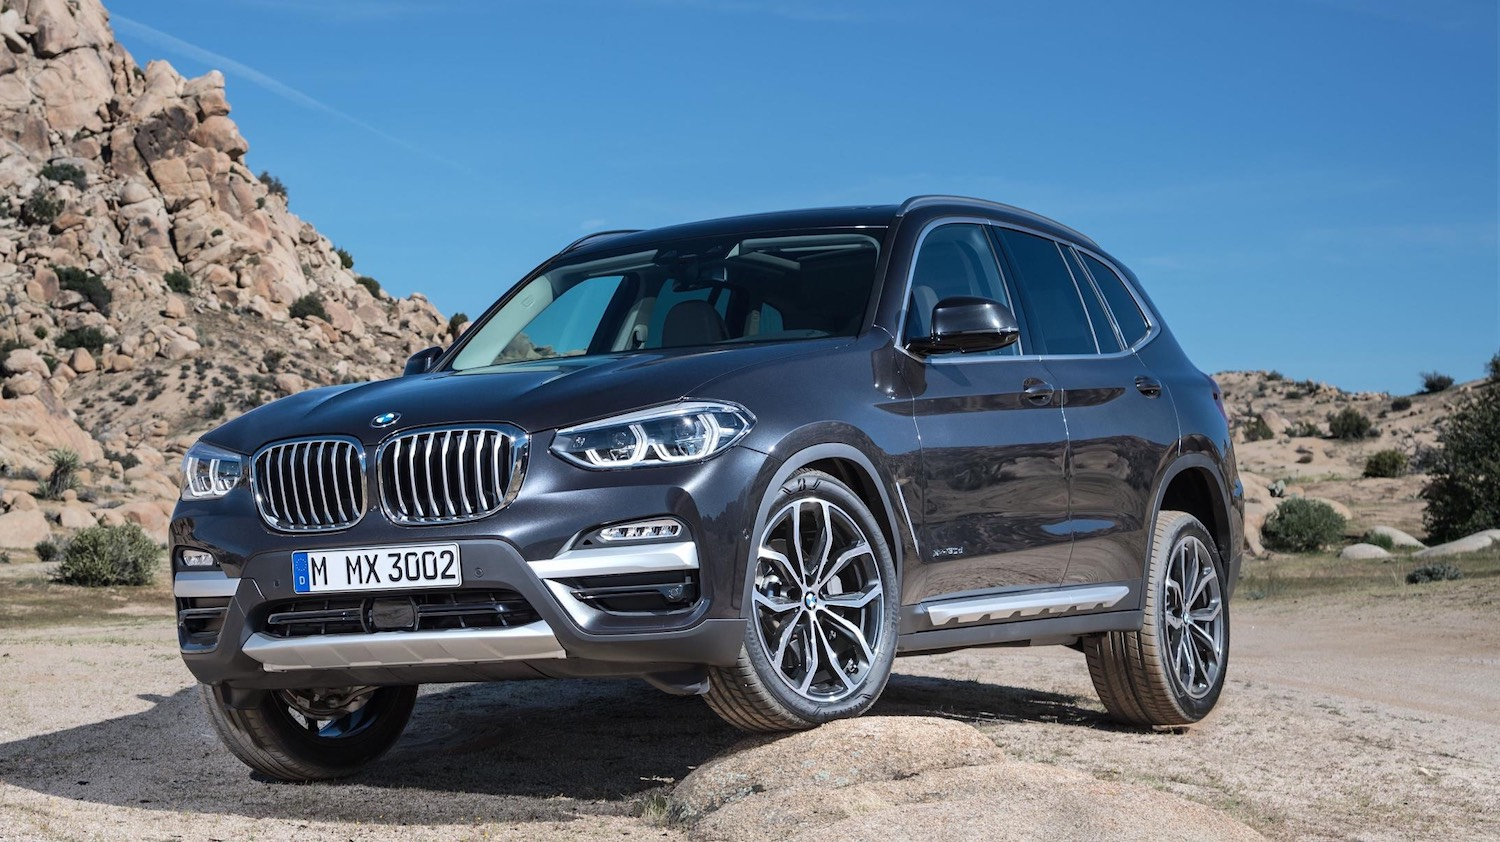 Drive Co Uk Bmw X3 Xdrive20d M Sport At Last A Car Of True Excellence